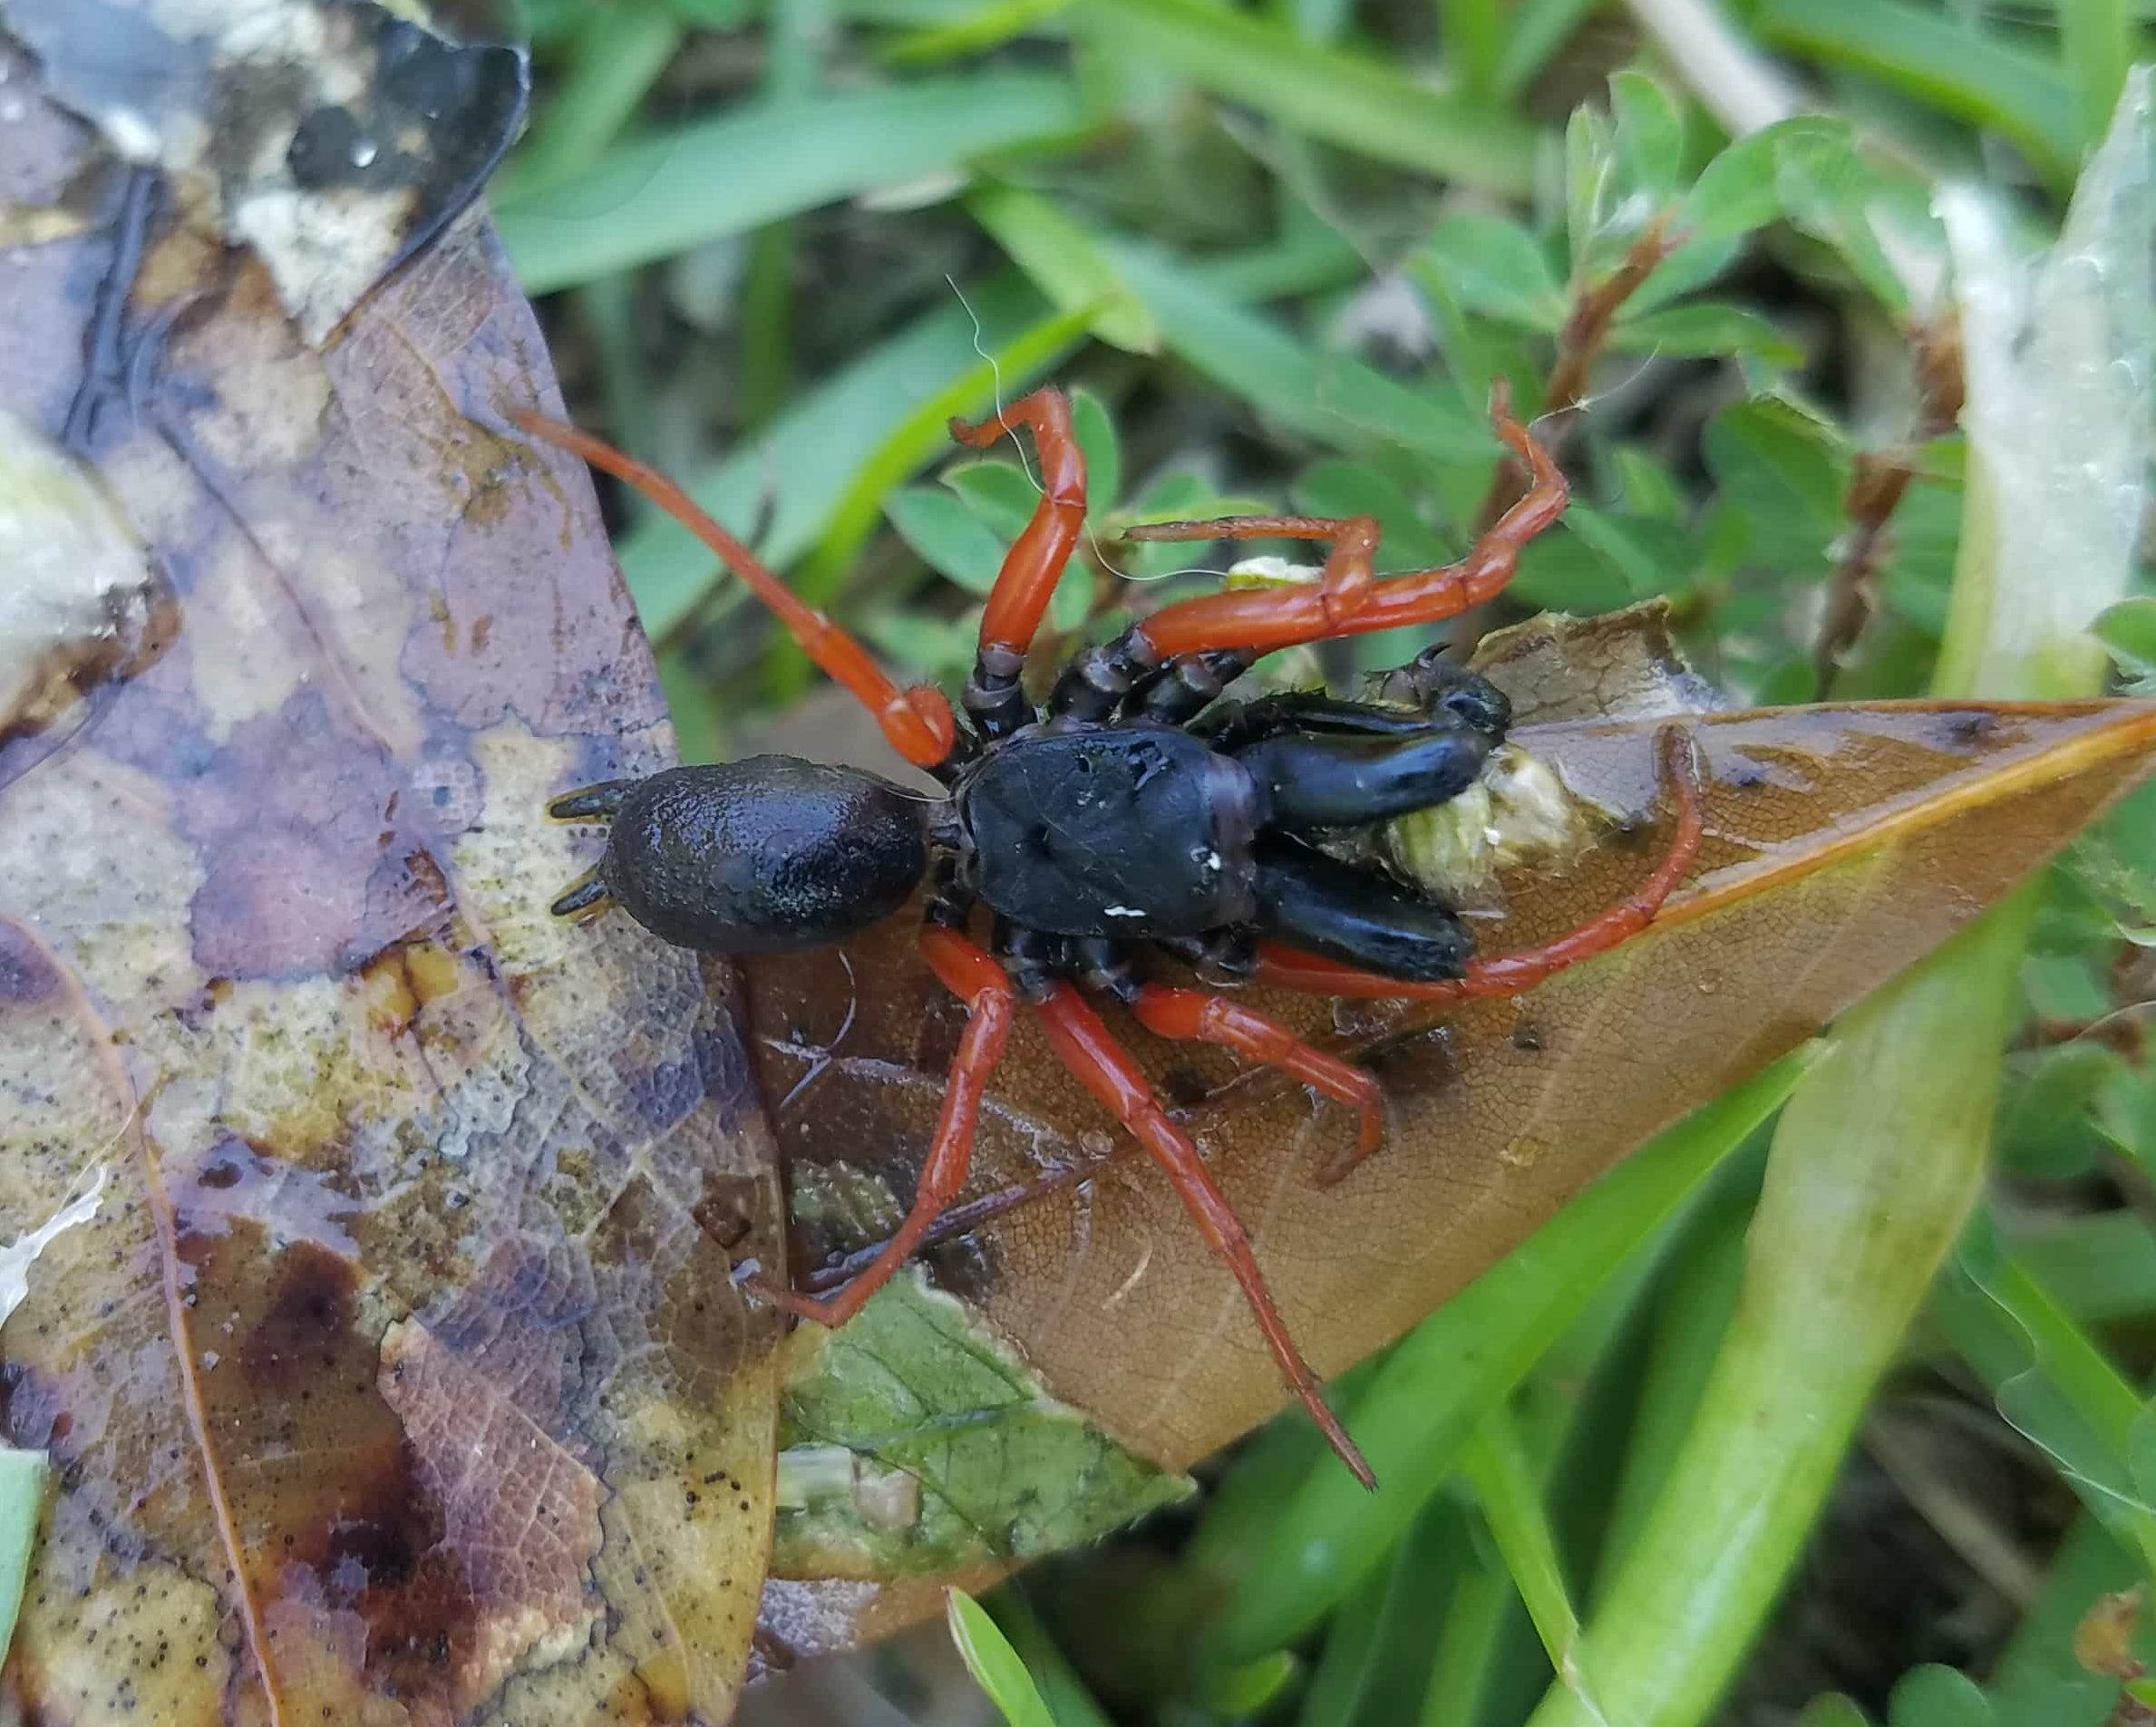 Picture of Sphodros rufipes (Red-legged Purse-web Spider) - Male - Dorsal